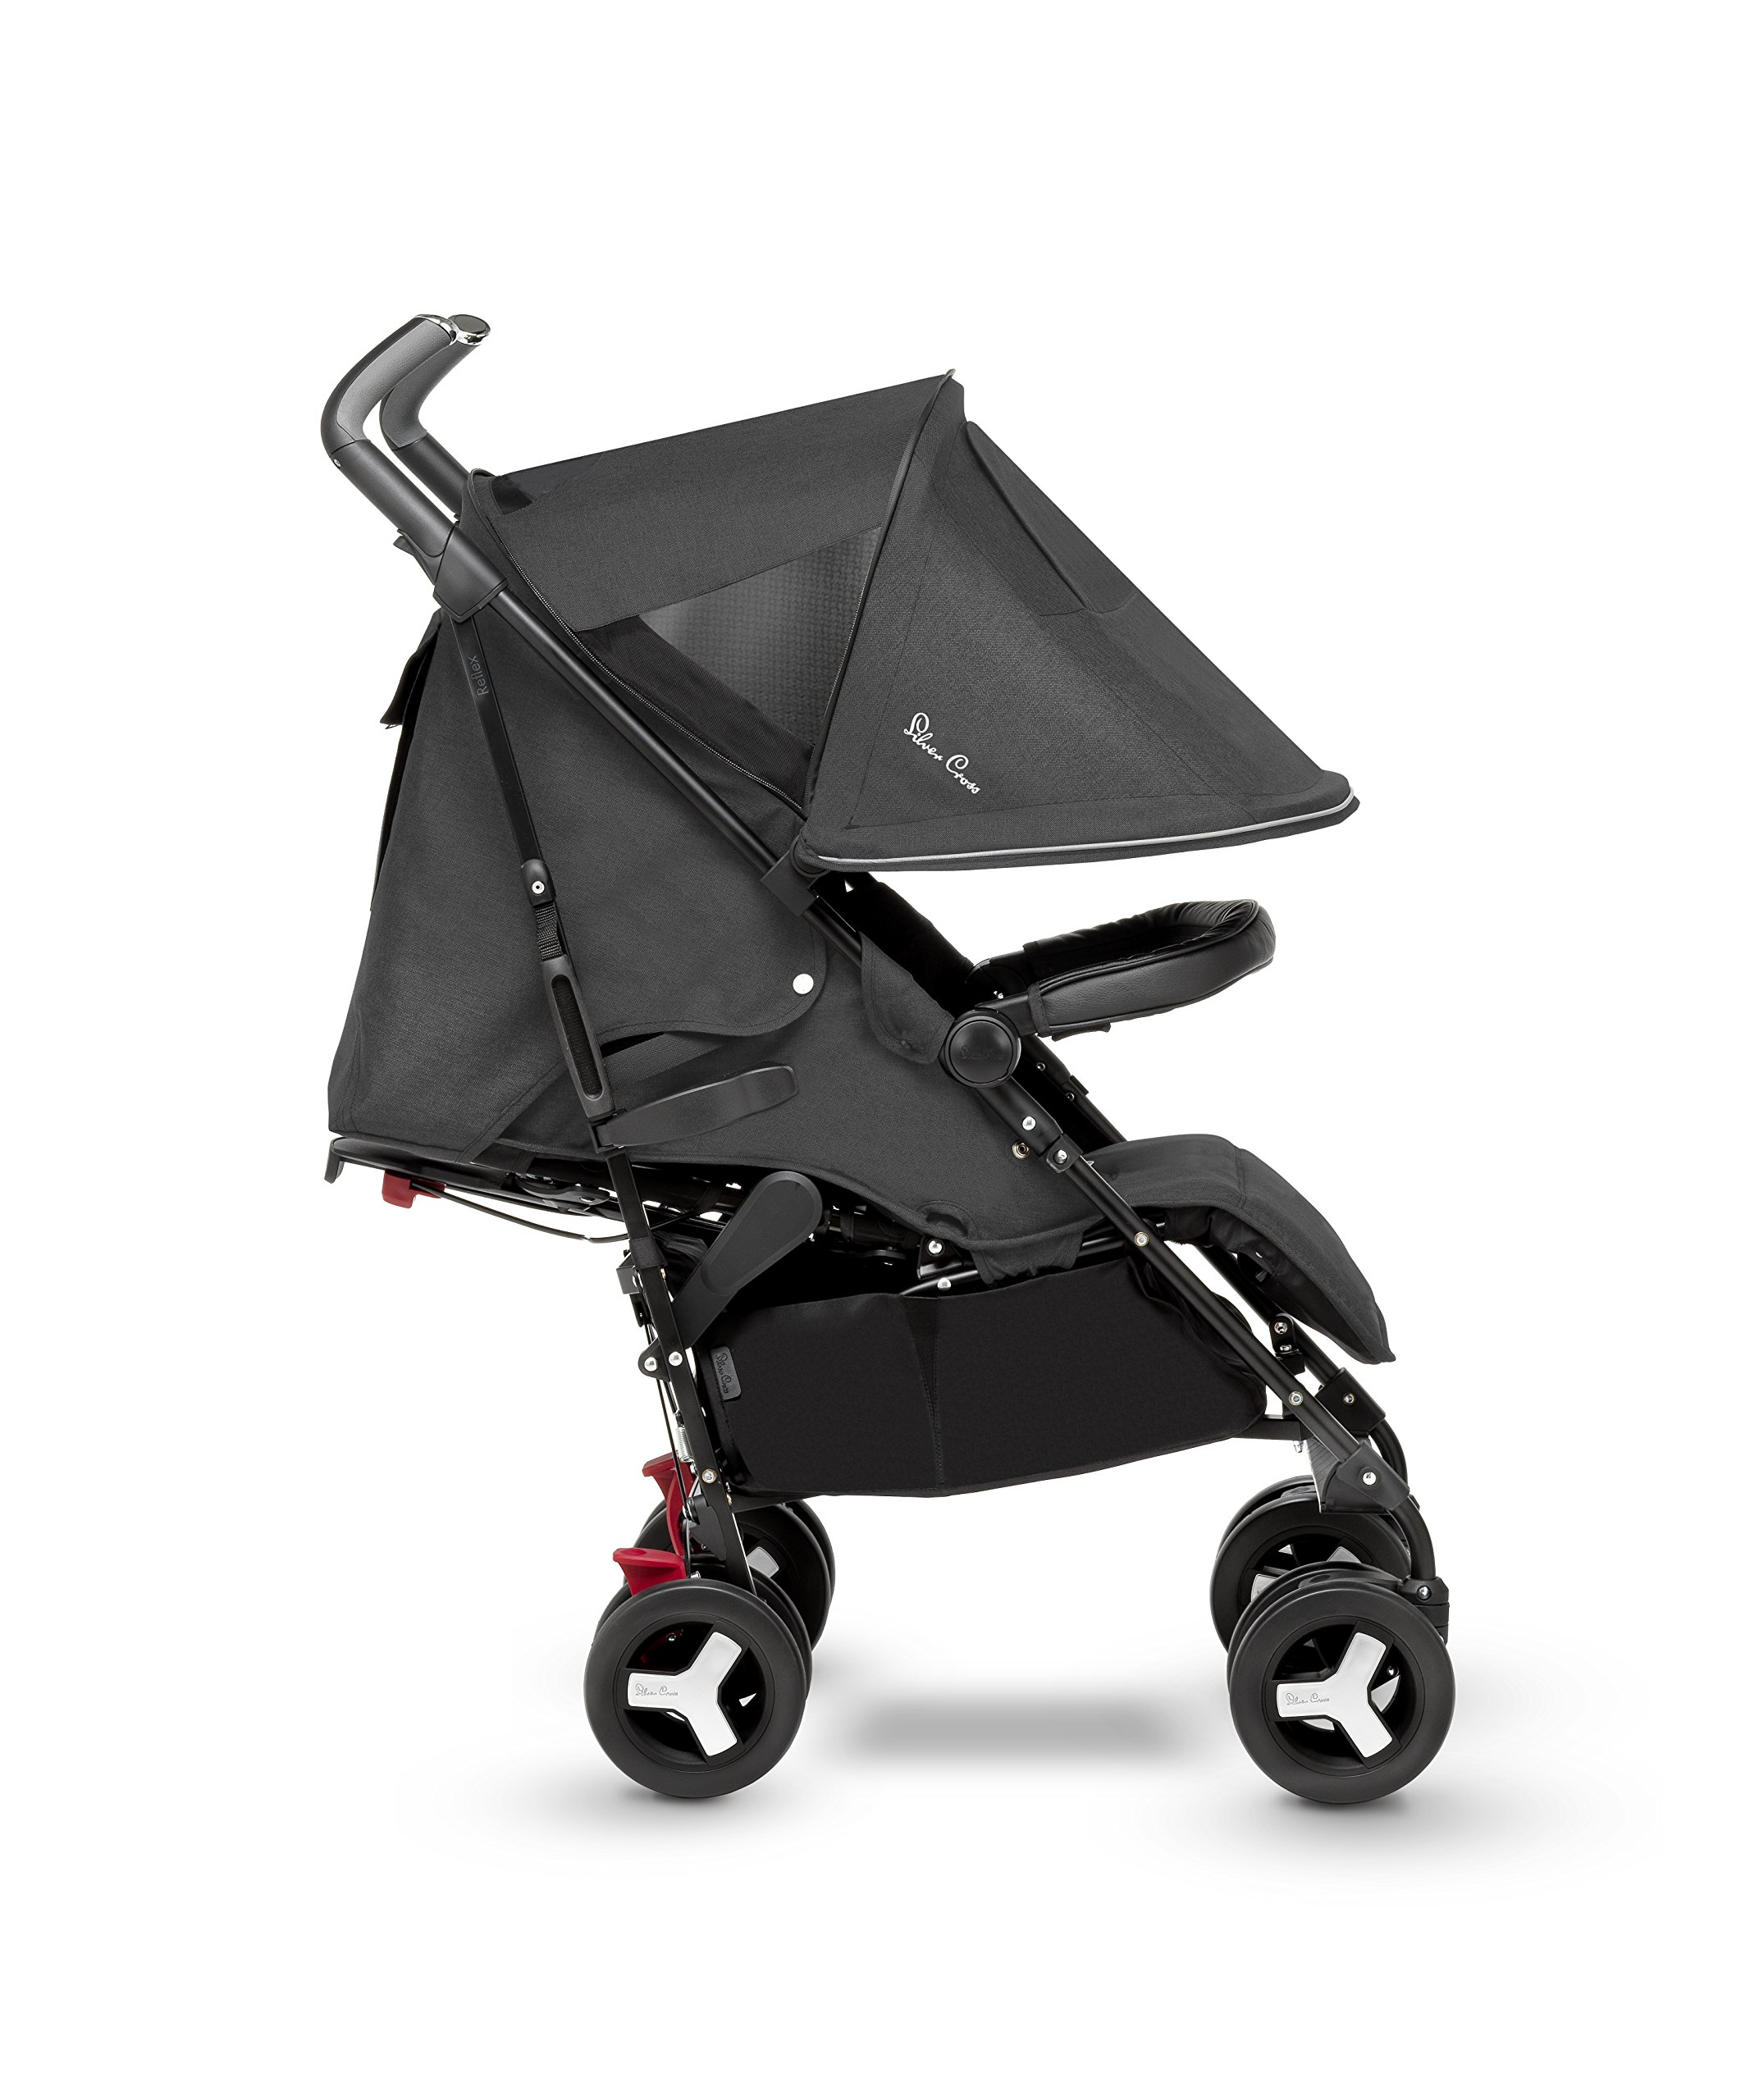 Silver Cross Reflex Stroller, Onyx Silver Cross Reflex is an advanced stroller, suitable from birth up to 25kg, with a wealth of features 5-point Harness Combine with Silver Cross Simplicity Car Seat to create a convenient Travel System 3